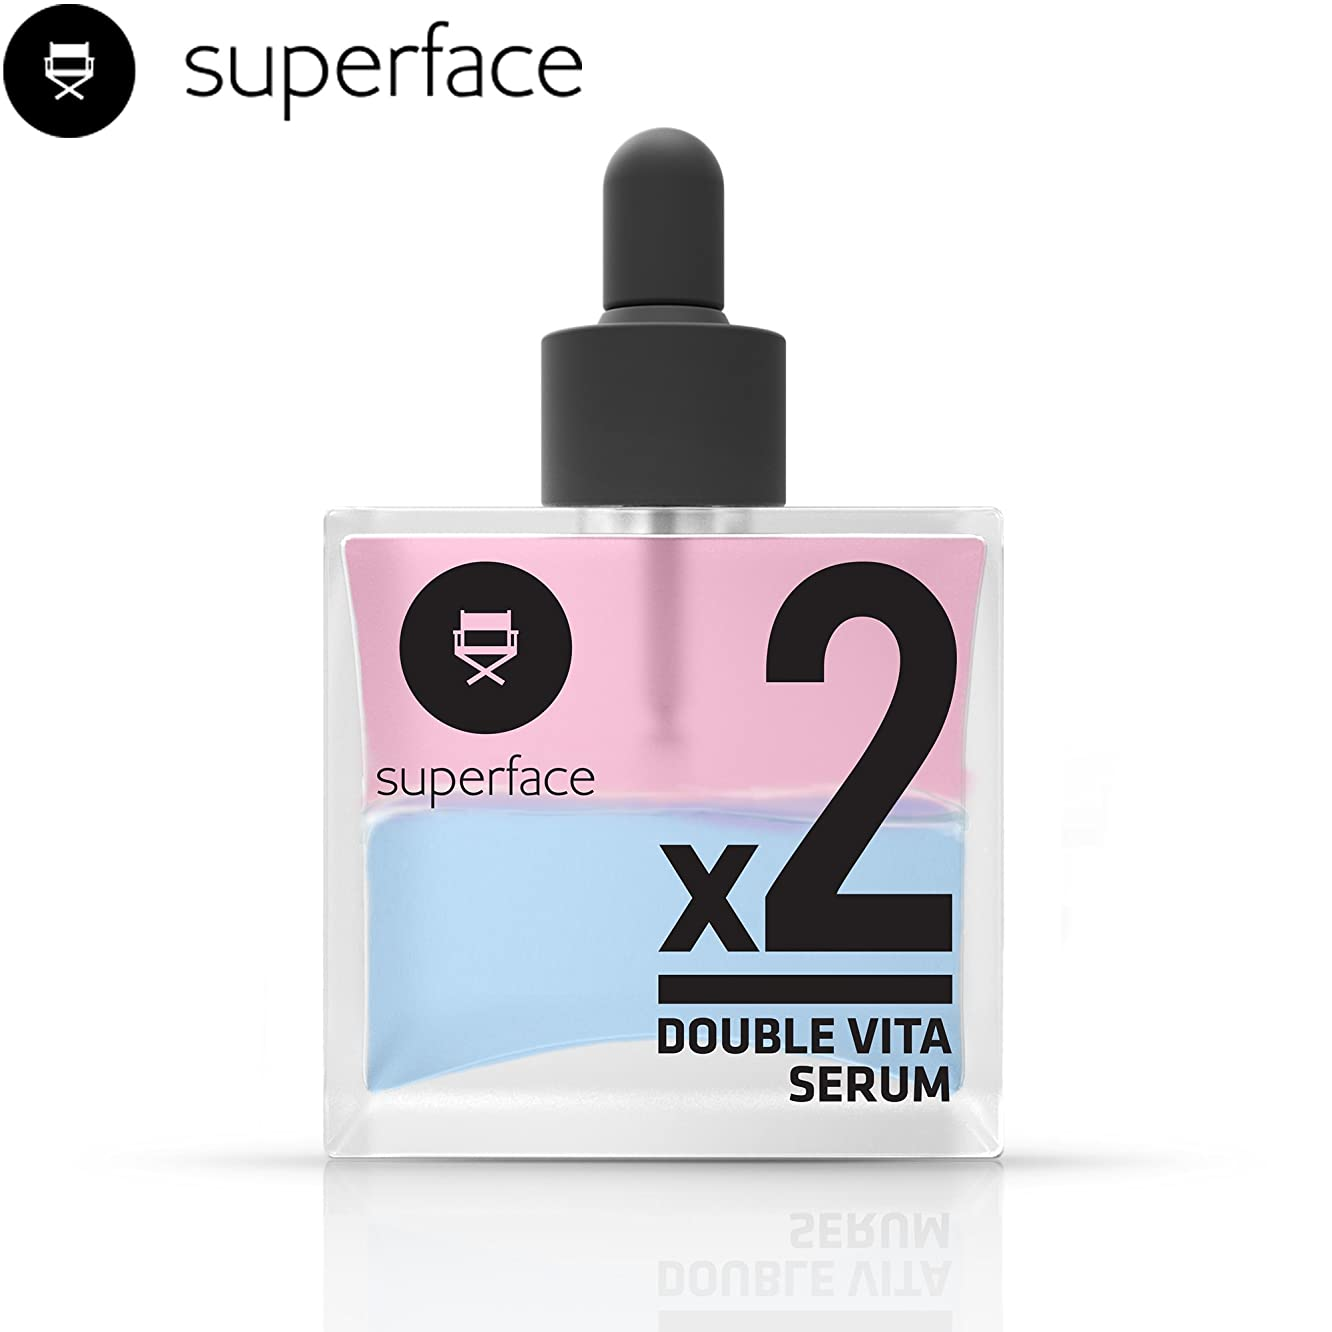 Double Vita Serum [superface] Deep Hydration Gel Type Vitamin C & E Blending Oil Serum for Skin Firmness and Radiance No Sticky Oily Finish - 50ml/1.69 fl.oz